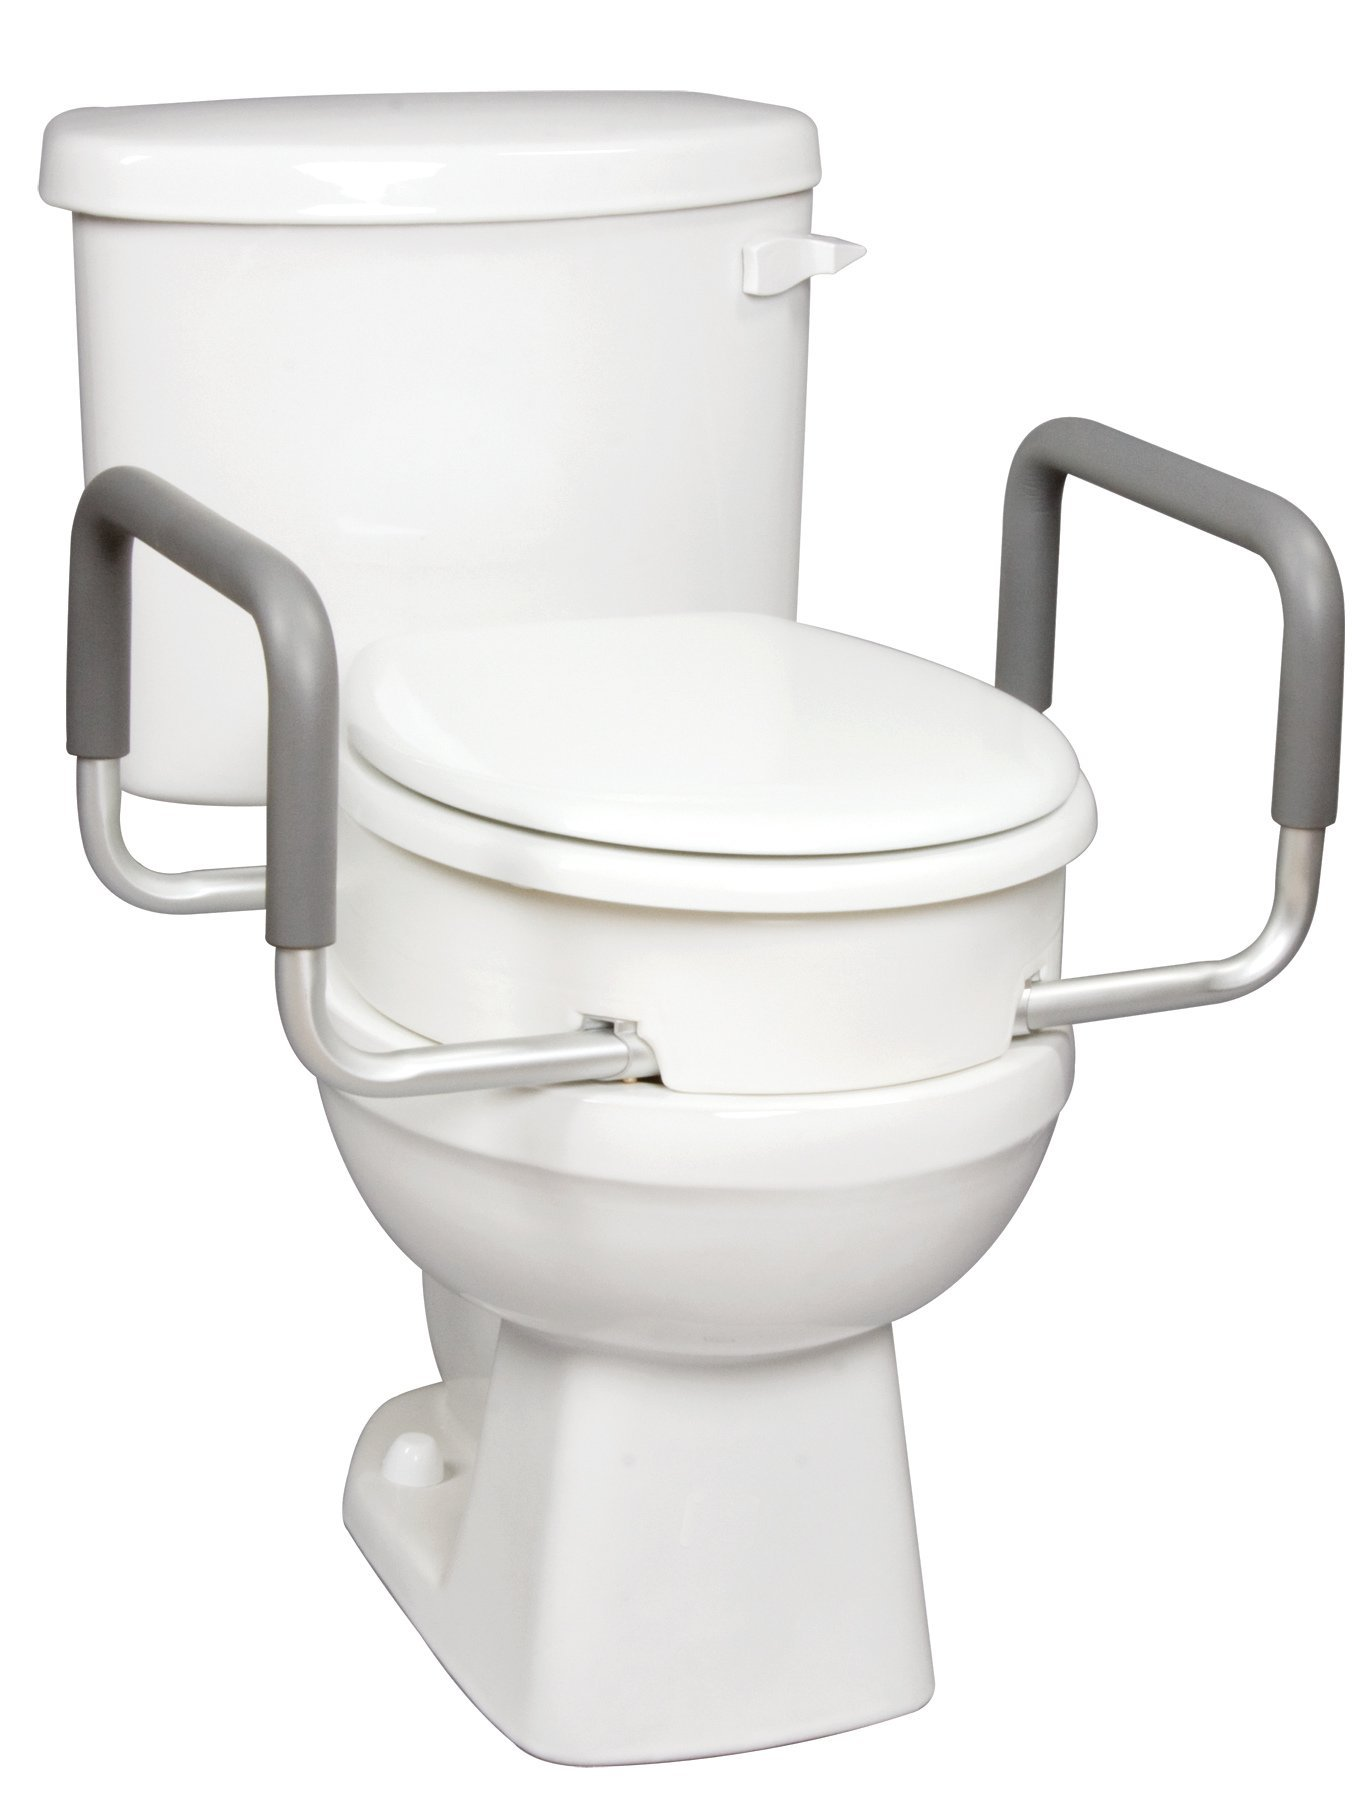 Carex Raised Toilet Seat Handles